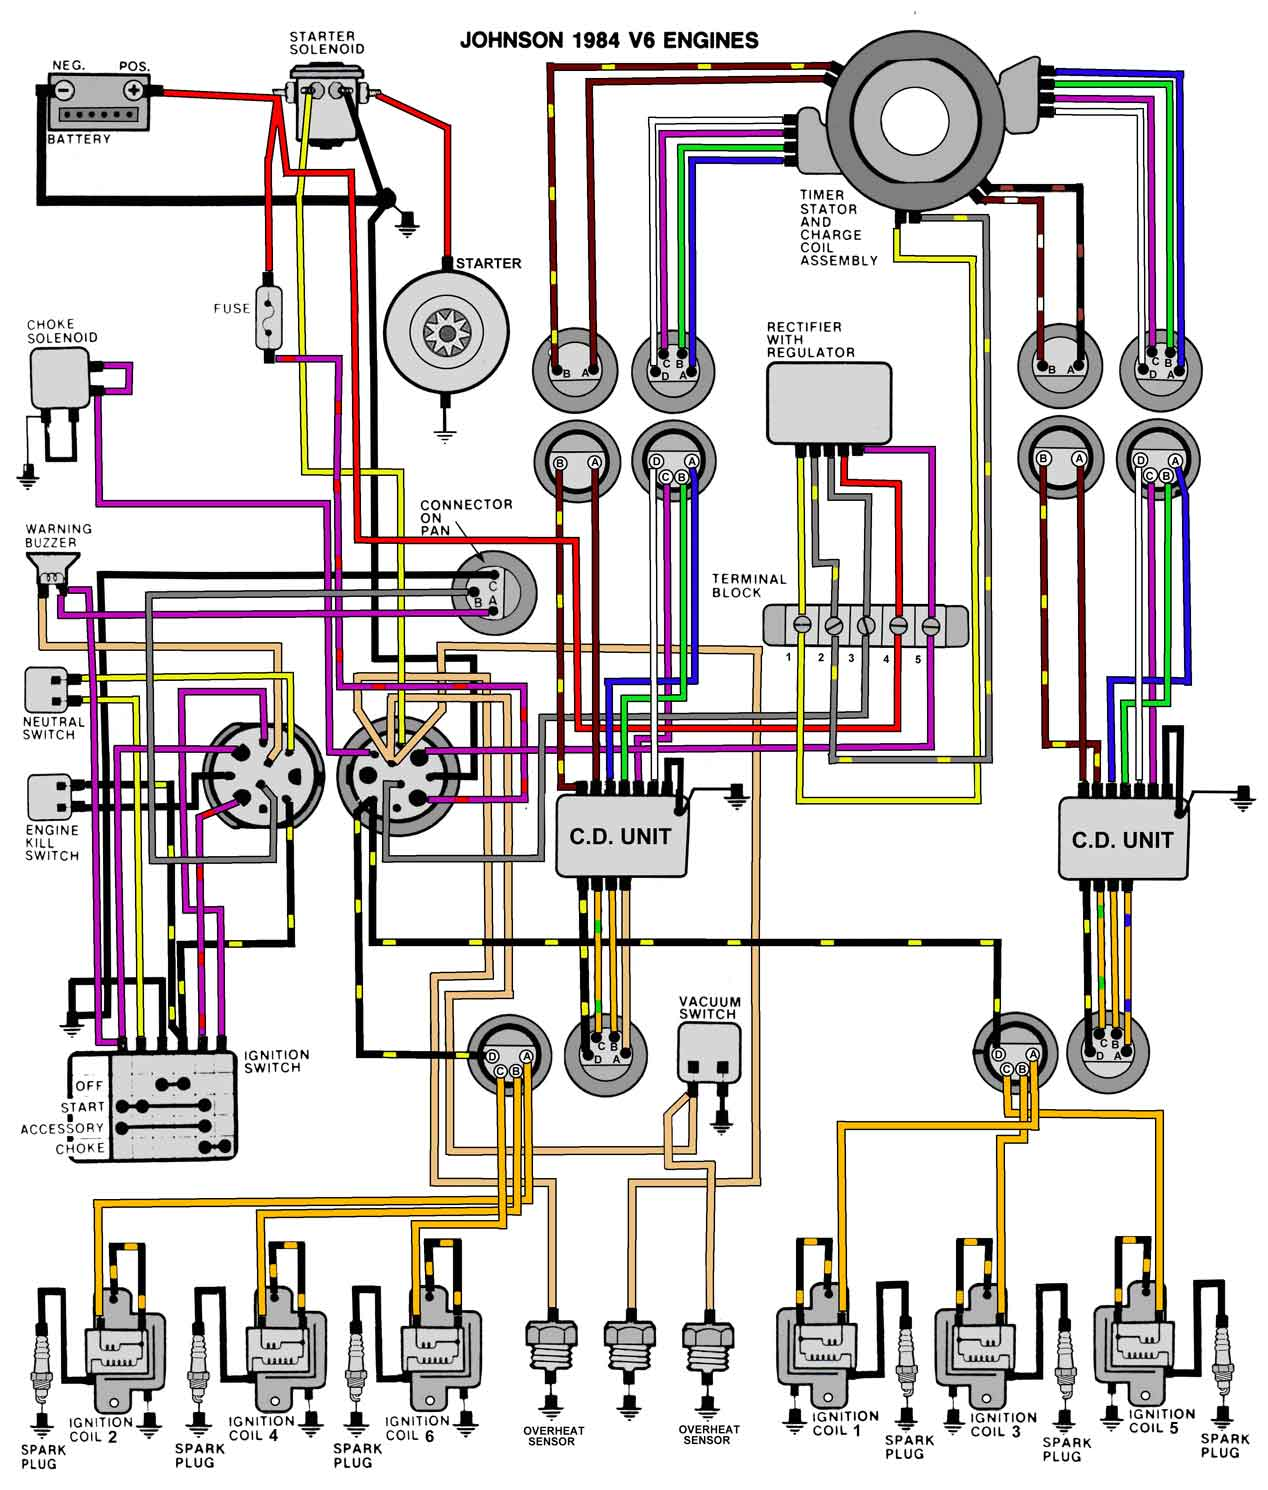 84_V6 johnson wiring harness diagram on johnson download wirning diagrams johnson outboard wiring schematic at webbmarketing.co